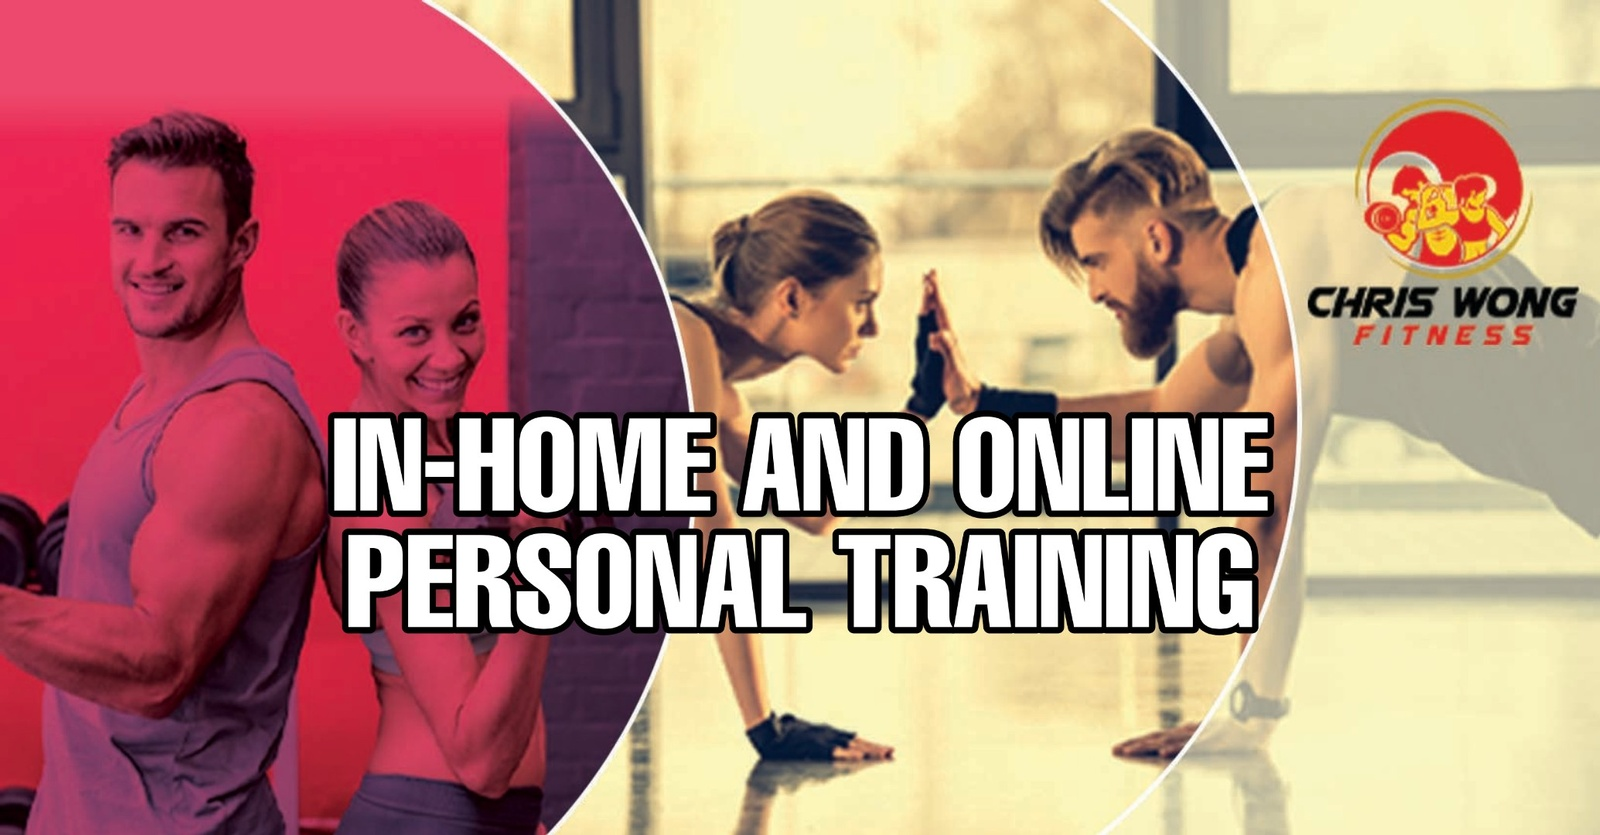 In-Home and Online Personal Training